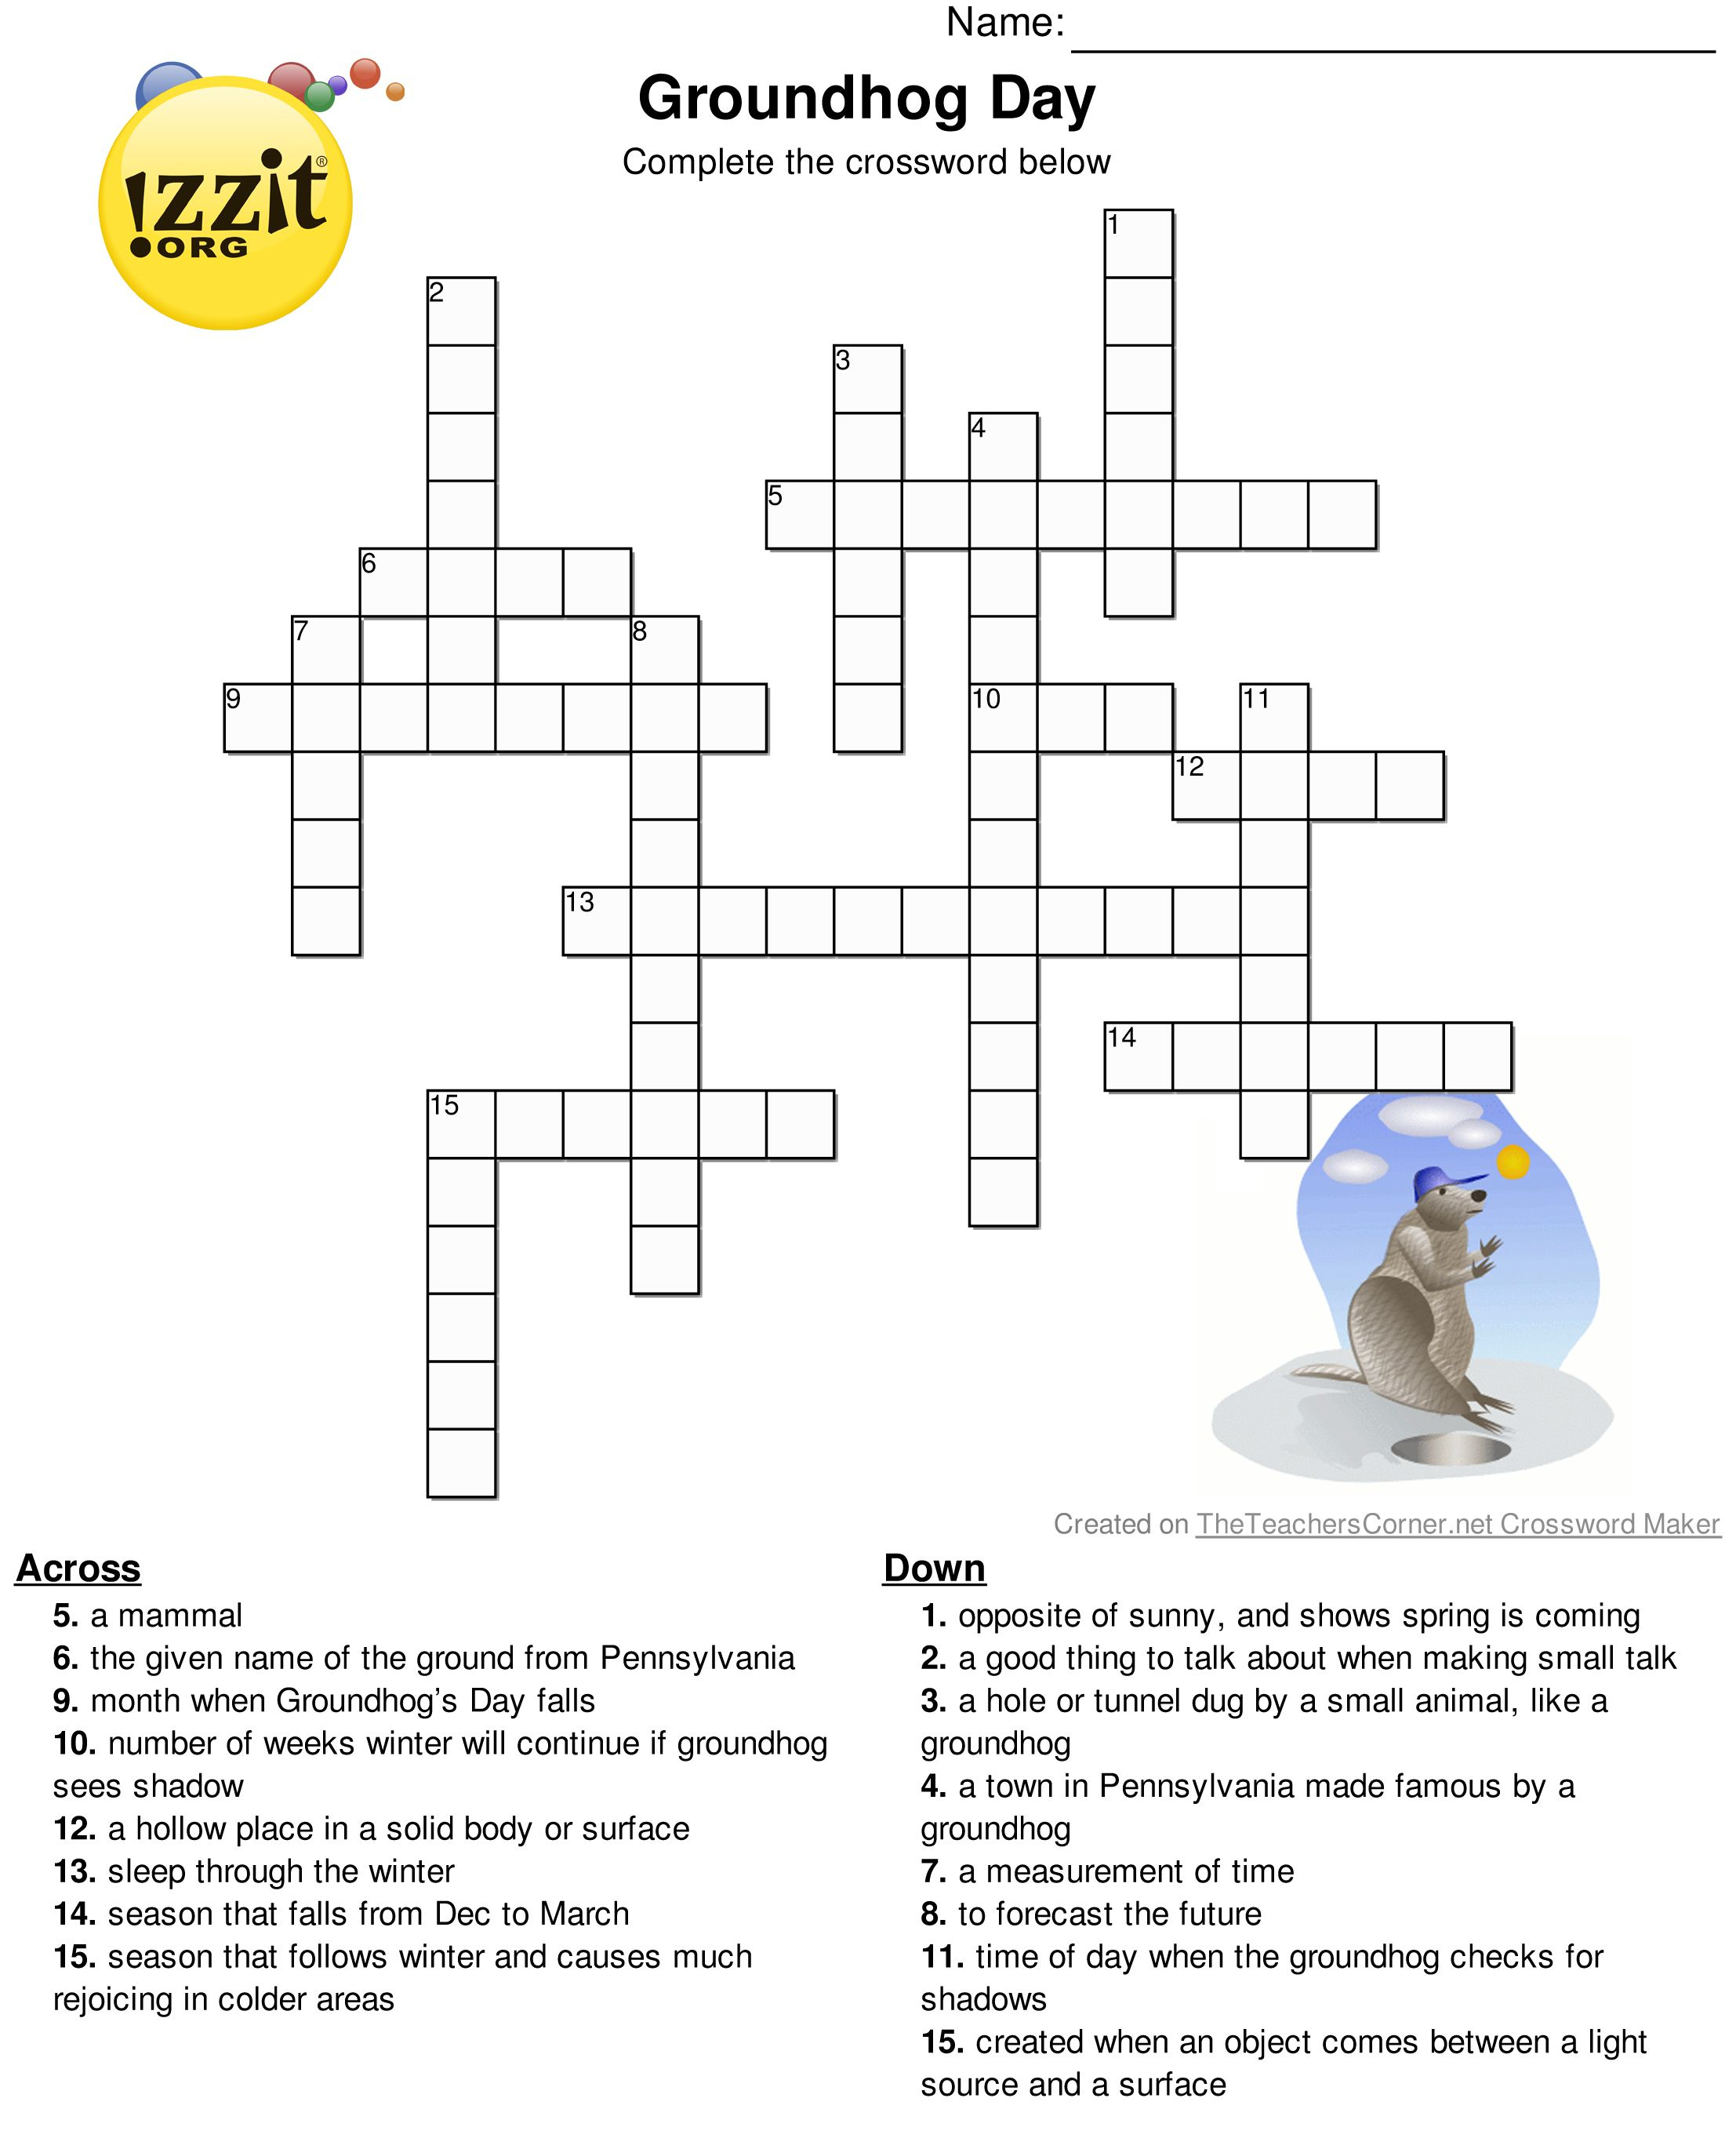 Pinterest - Groundhog Day Crossword Puzzles Printable